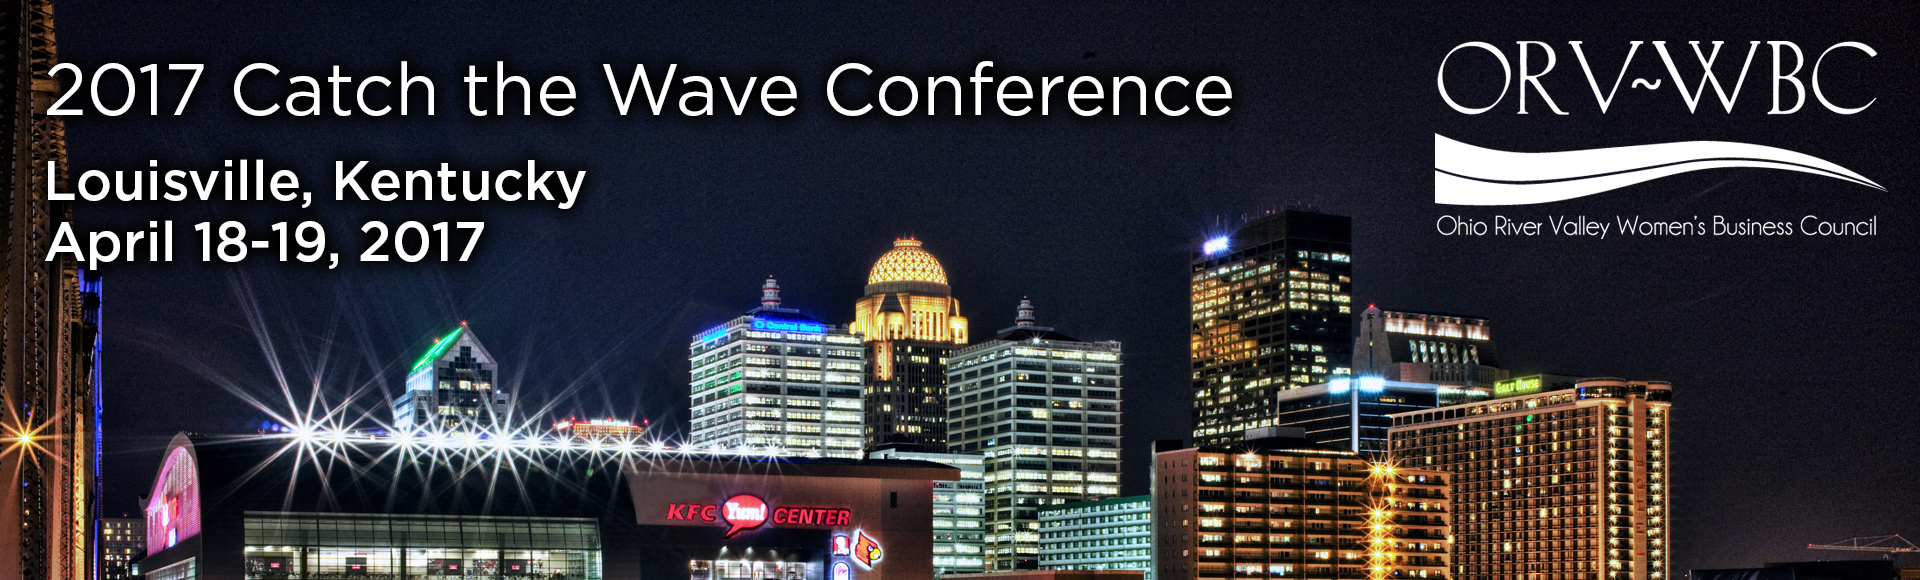 Ohio-River-Valley-Womens-business-center-conference.jpg